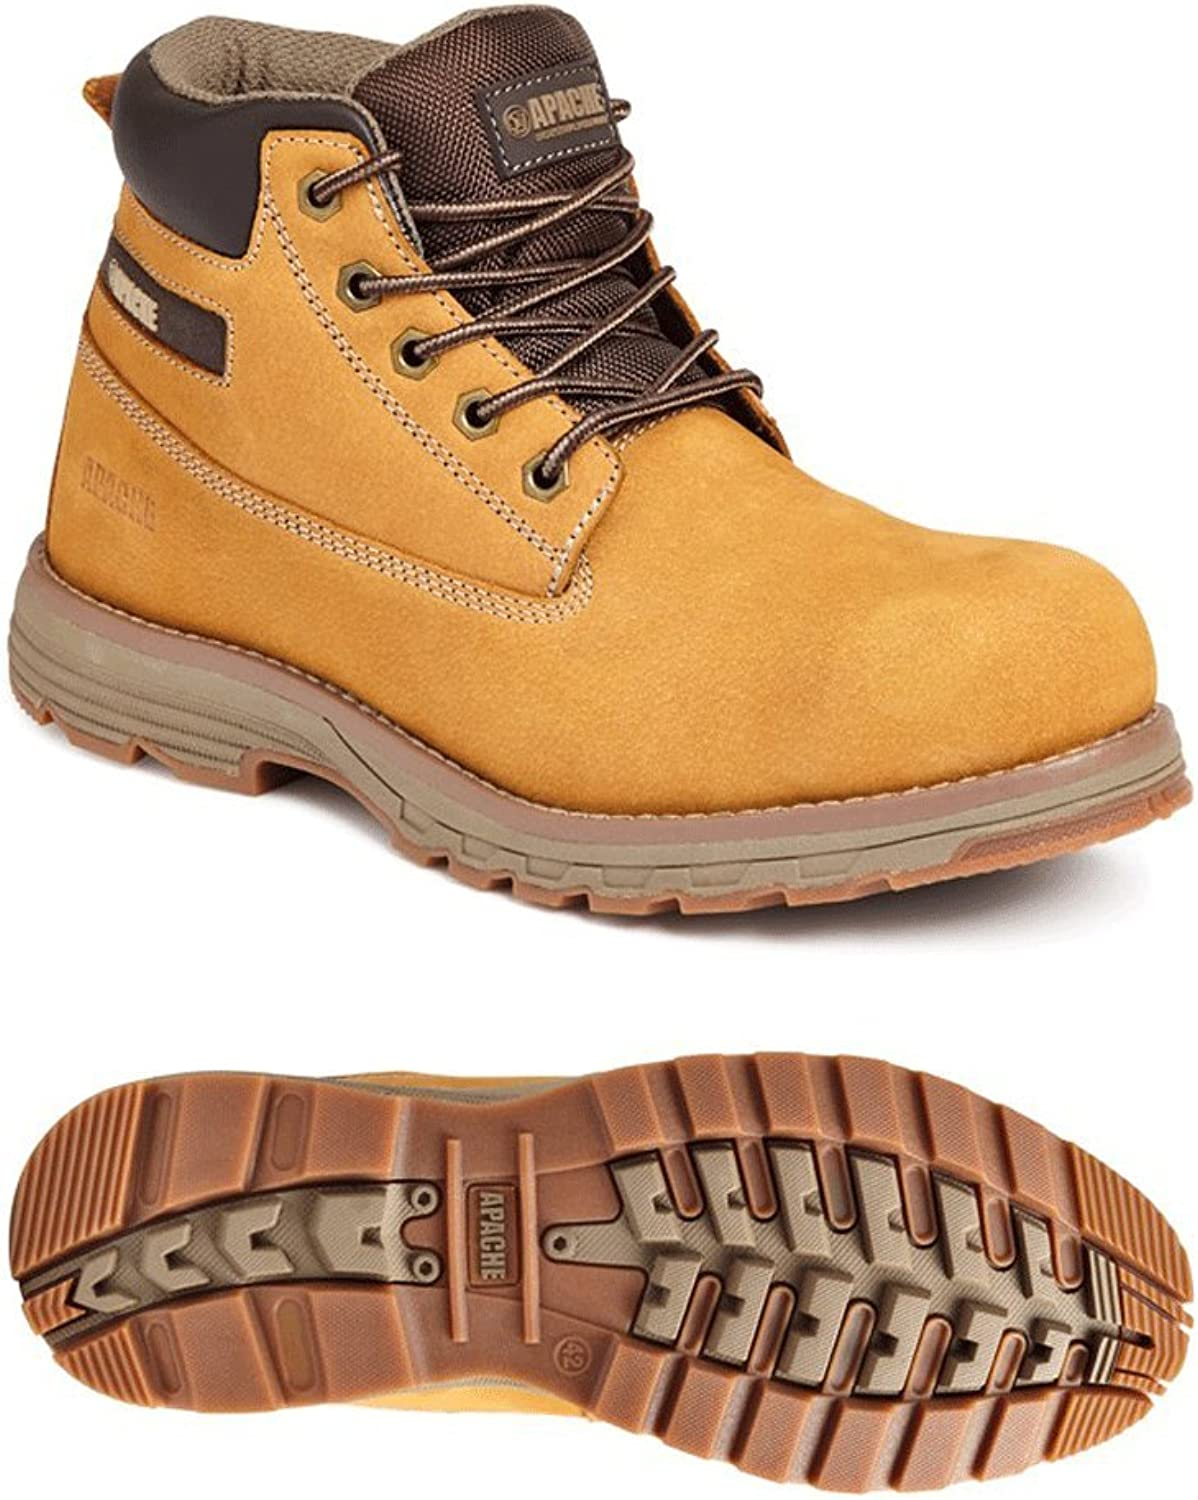 Apache Men's Flyweight Safety Boots